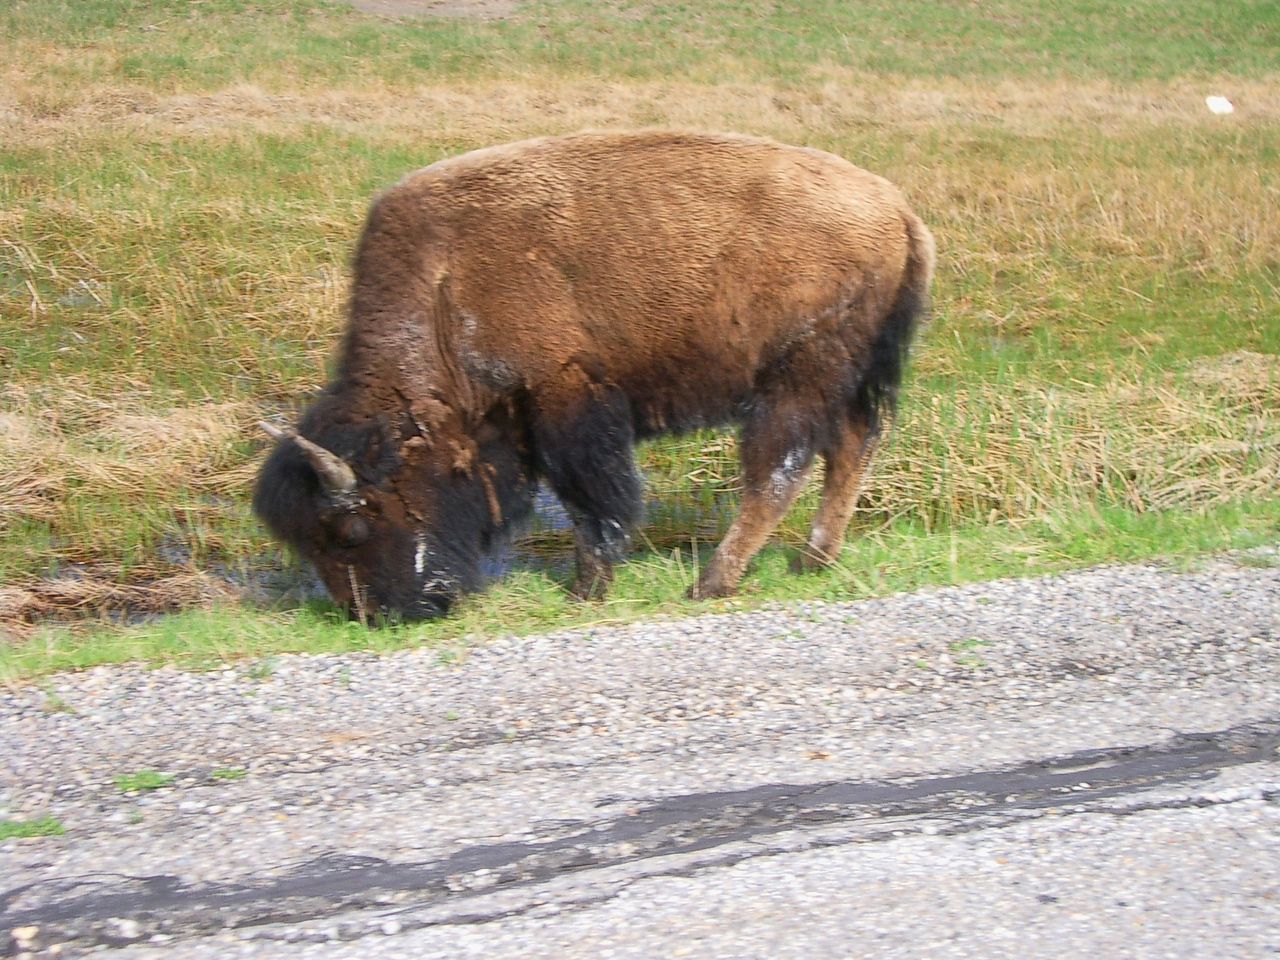 This is slightly out of focus because I shot this while in motion riding by. This guy had just strolled across the road.<br /> <br /> There were signs up about the bison being unpredictable and at times charging people, so being only about 10 feet away, I had one hand on the throttle ready to speed up and get out of there fast!